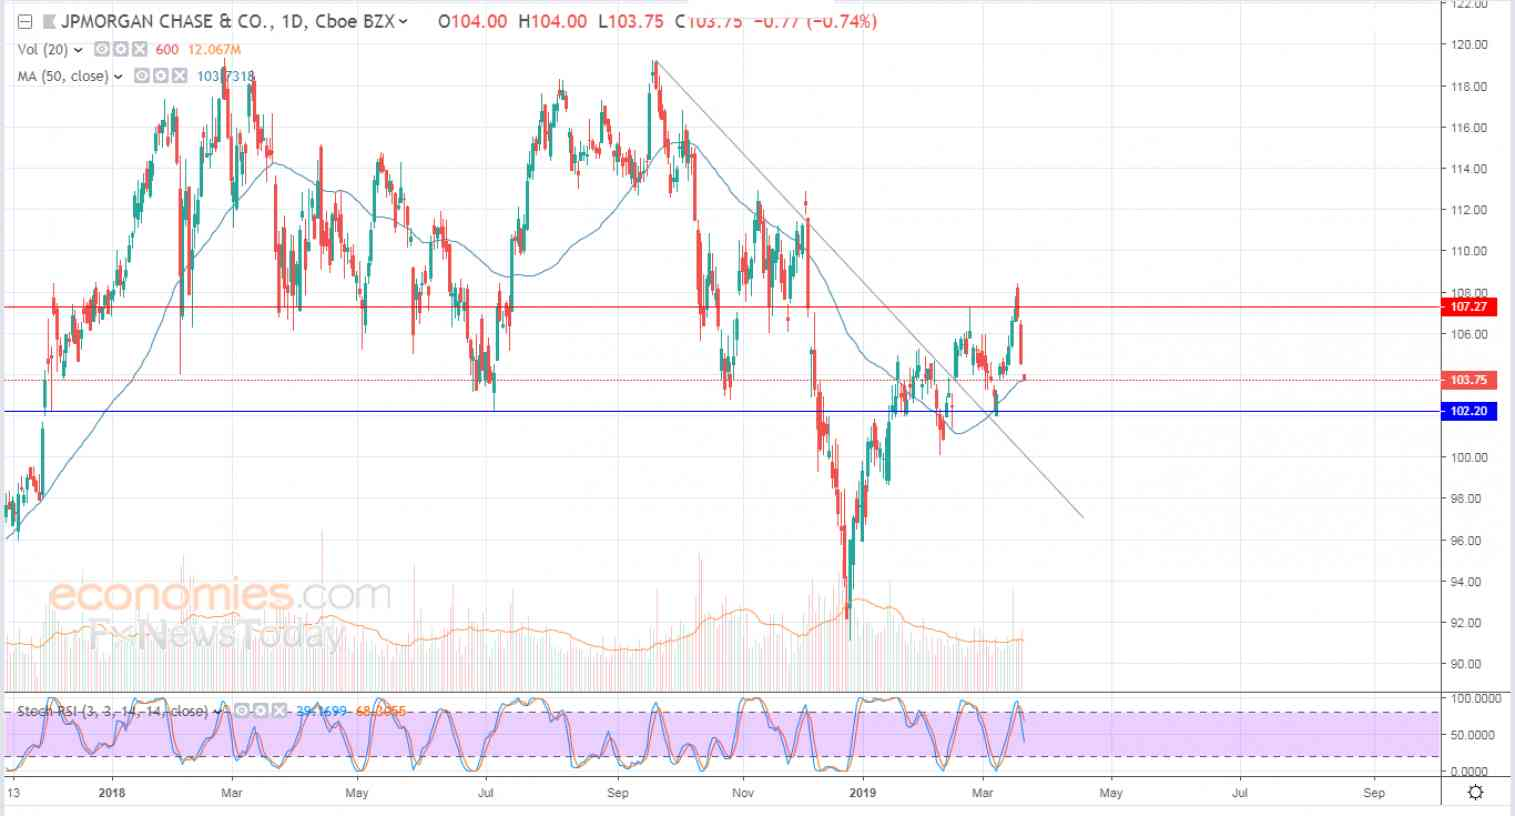 JPMorgan leans on SMA support - Analysis - 21-03-2019